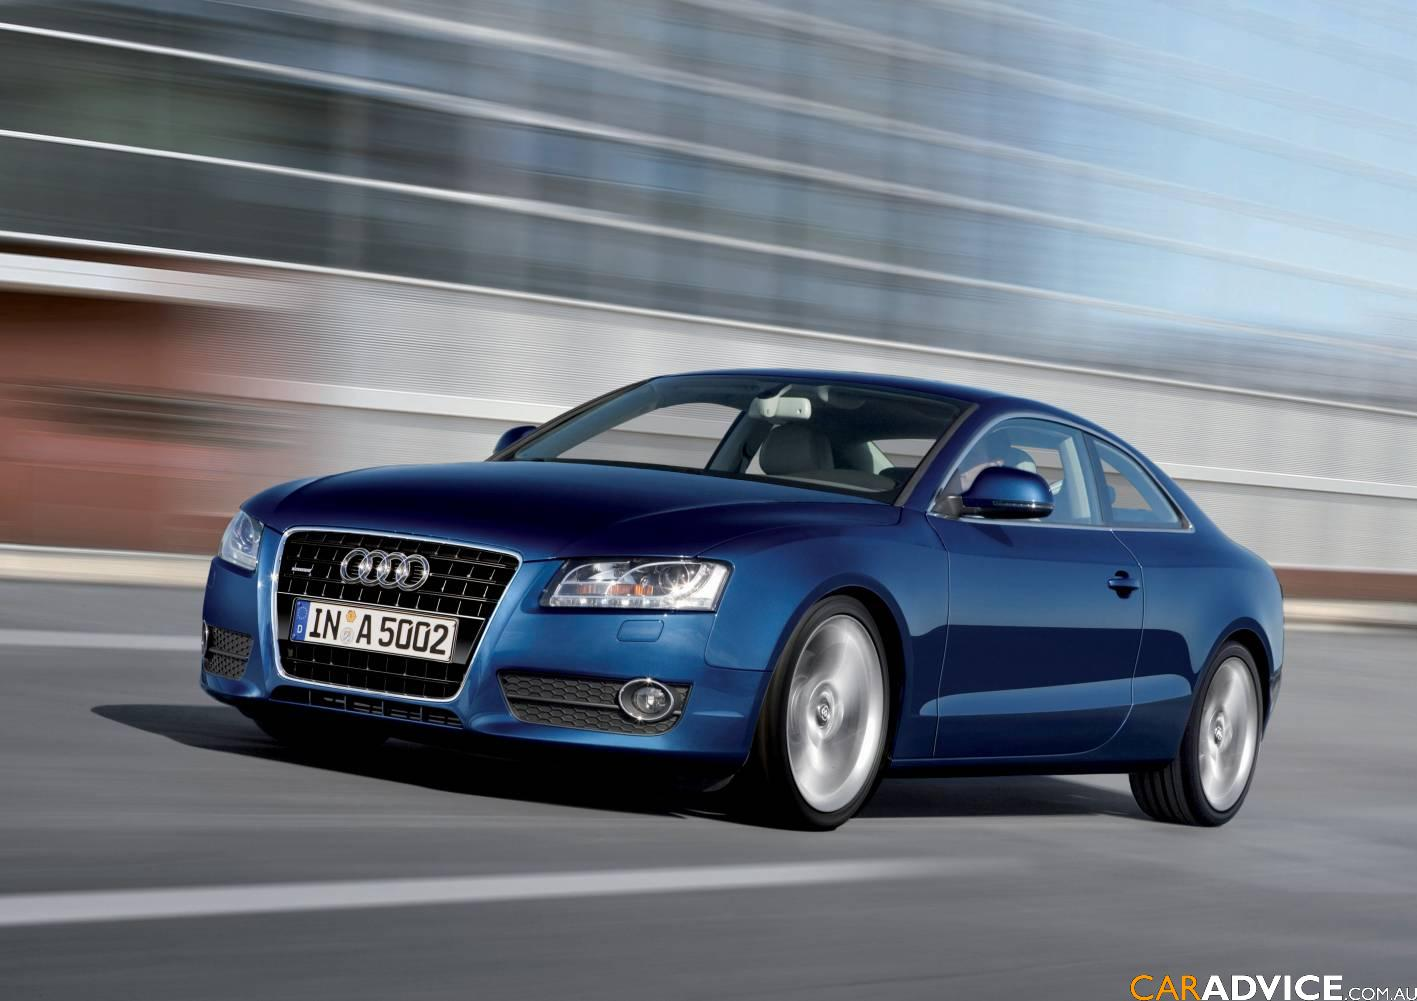 audi a5 coupe arrives in australia photos 1 of 4. Black Bedroom Furniture Sets. Home Design Ideas